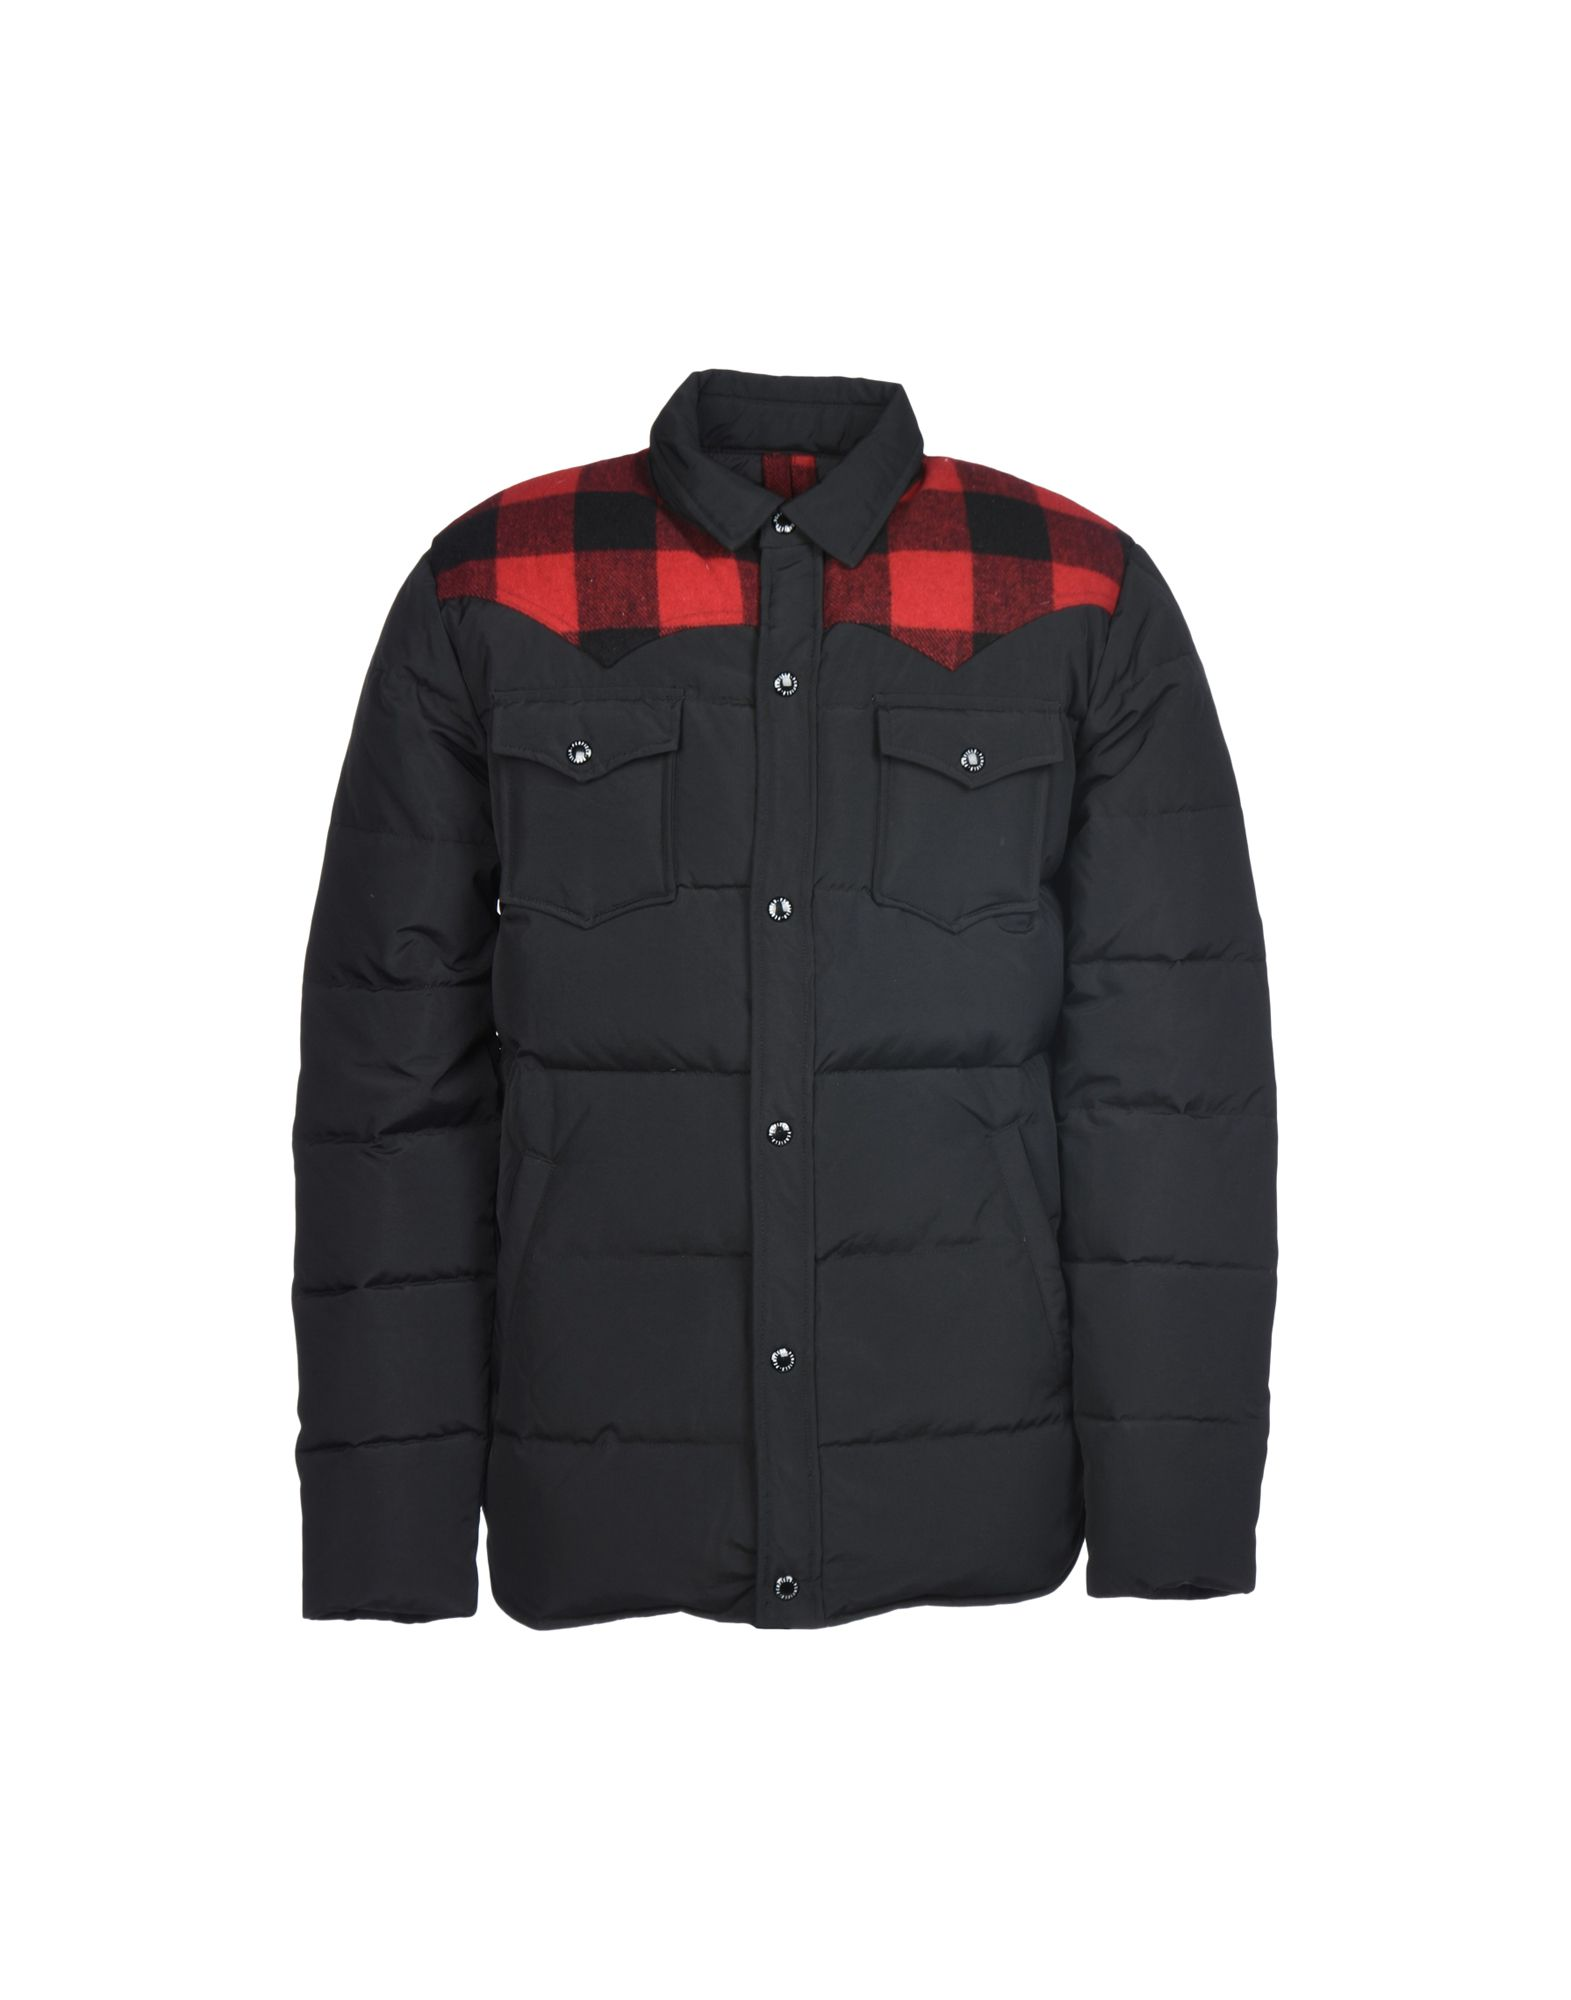 Penfield Men - Penfield Coats & Jackets - YOOX United States